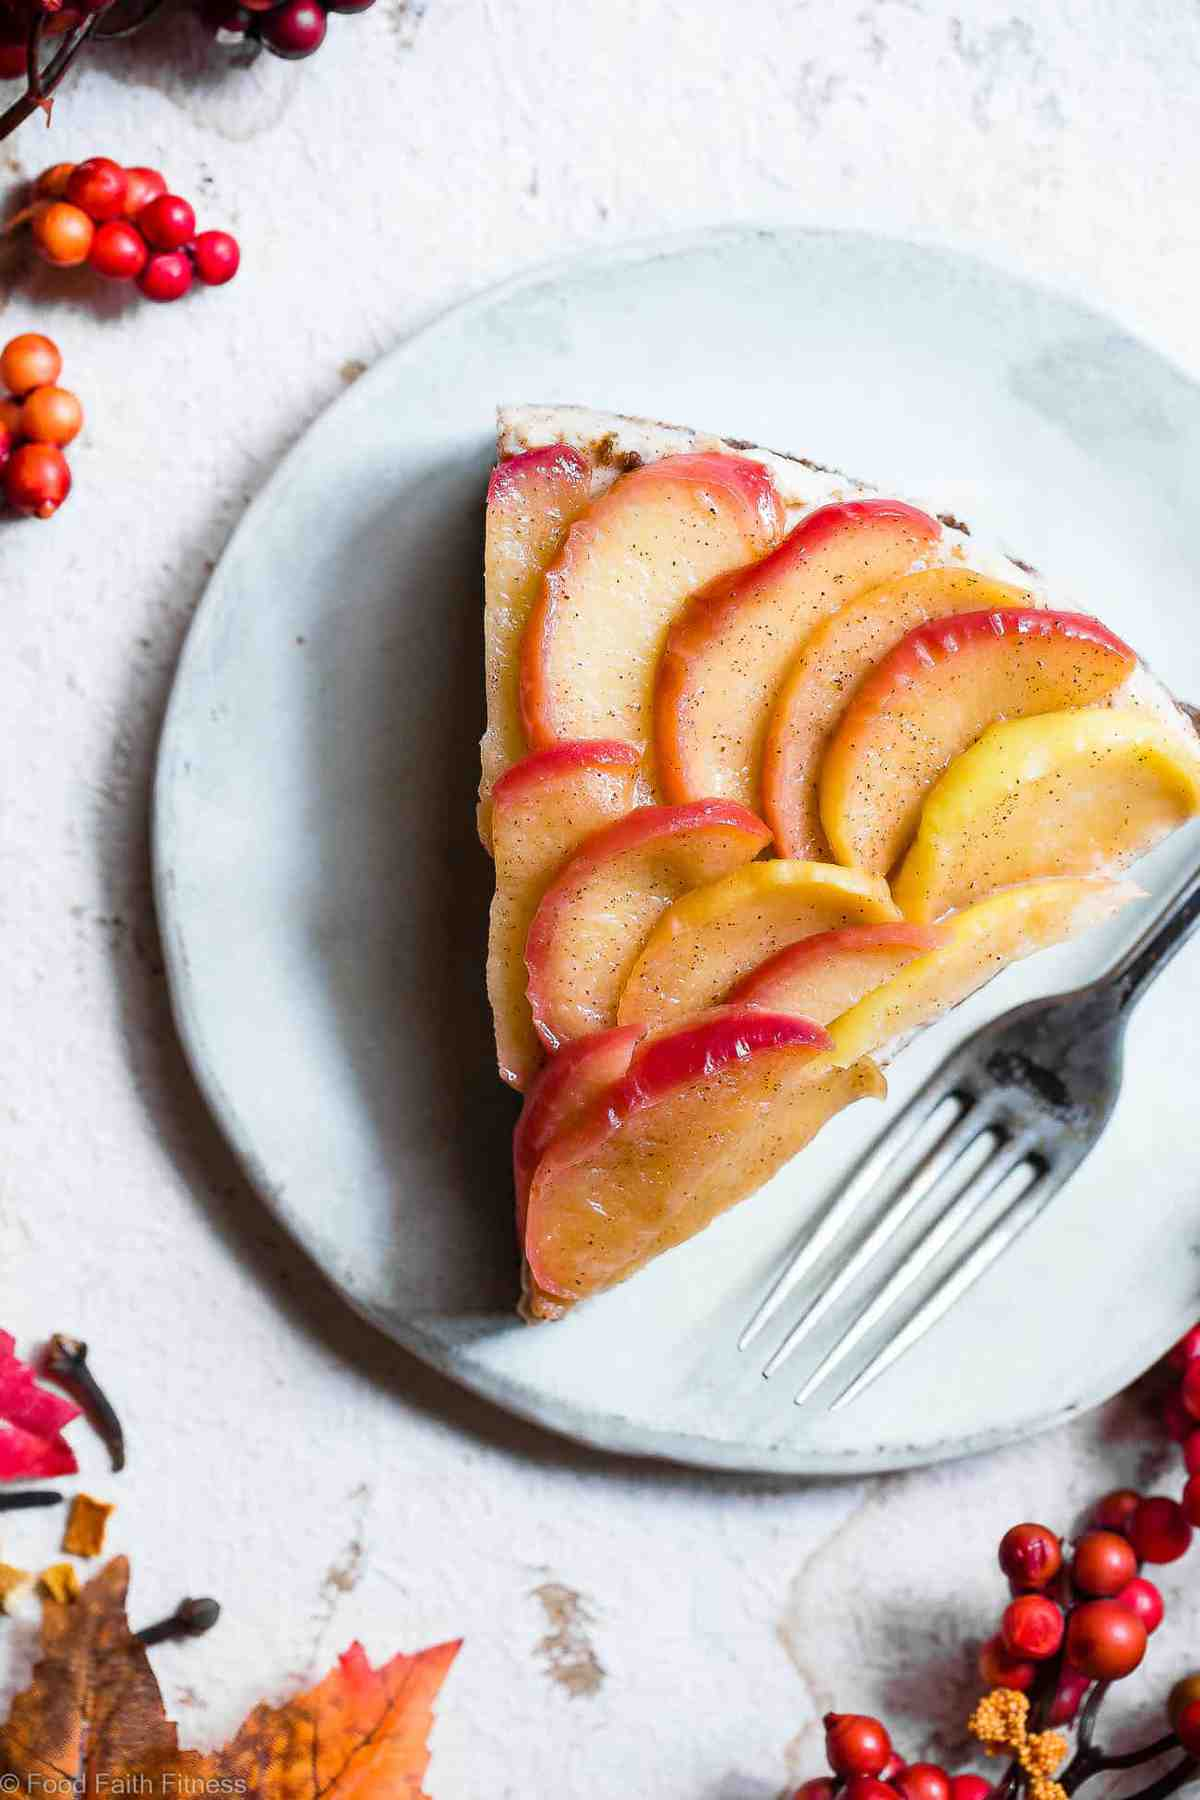 Honey Apple Goat Cheese Cheesecake - This creamy chevre cheesecake is topped with cinnamon honey apples and is perfectly sweet and a little bit tangy! Gluten free, grain free and made with Greek yogurt to keep it light! My husband said it's the best dessert he has ever had! | #Foodfaithfitness | #Glutenfree #Cheesecake #Grainfree #Healthy #Goatcheese